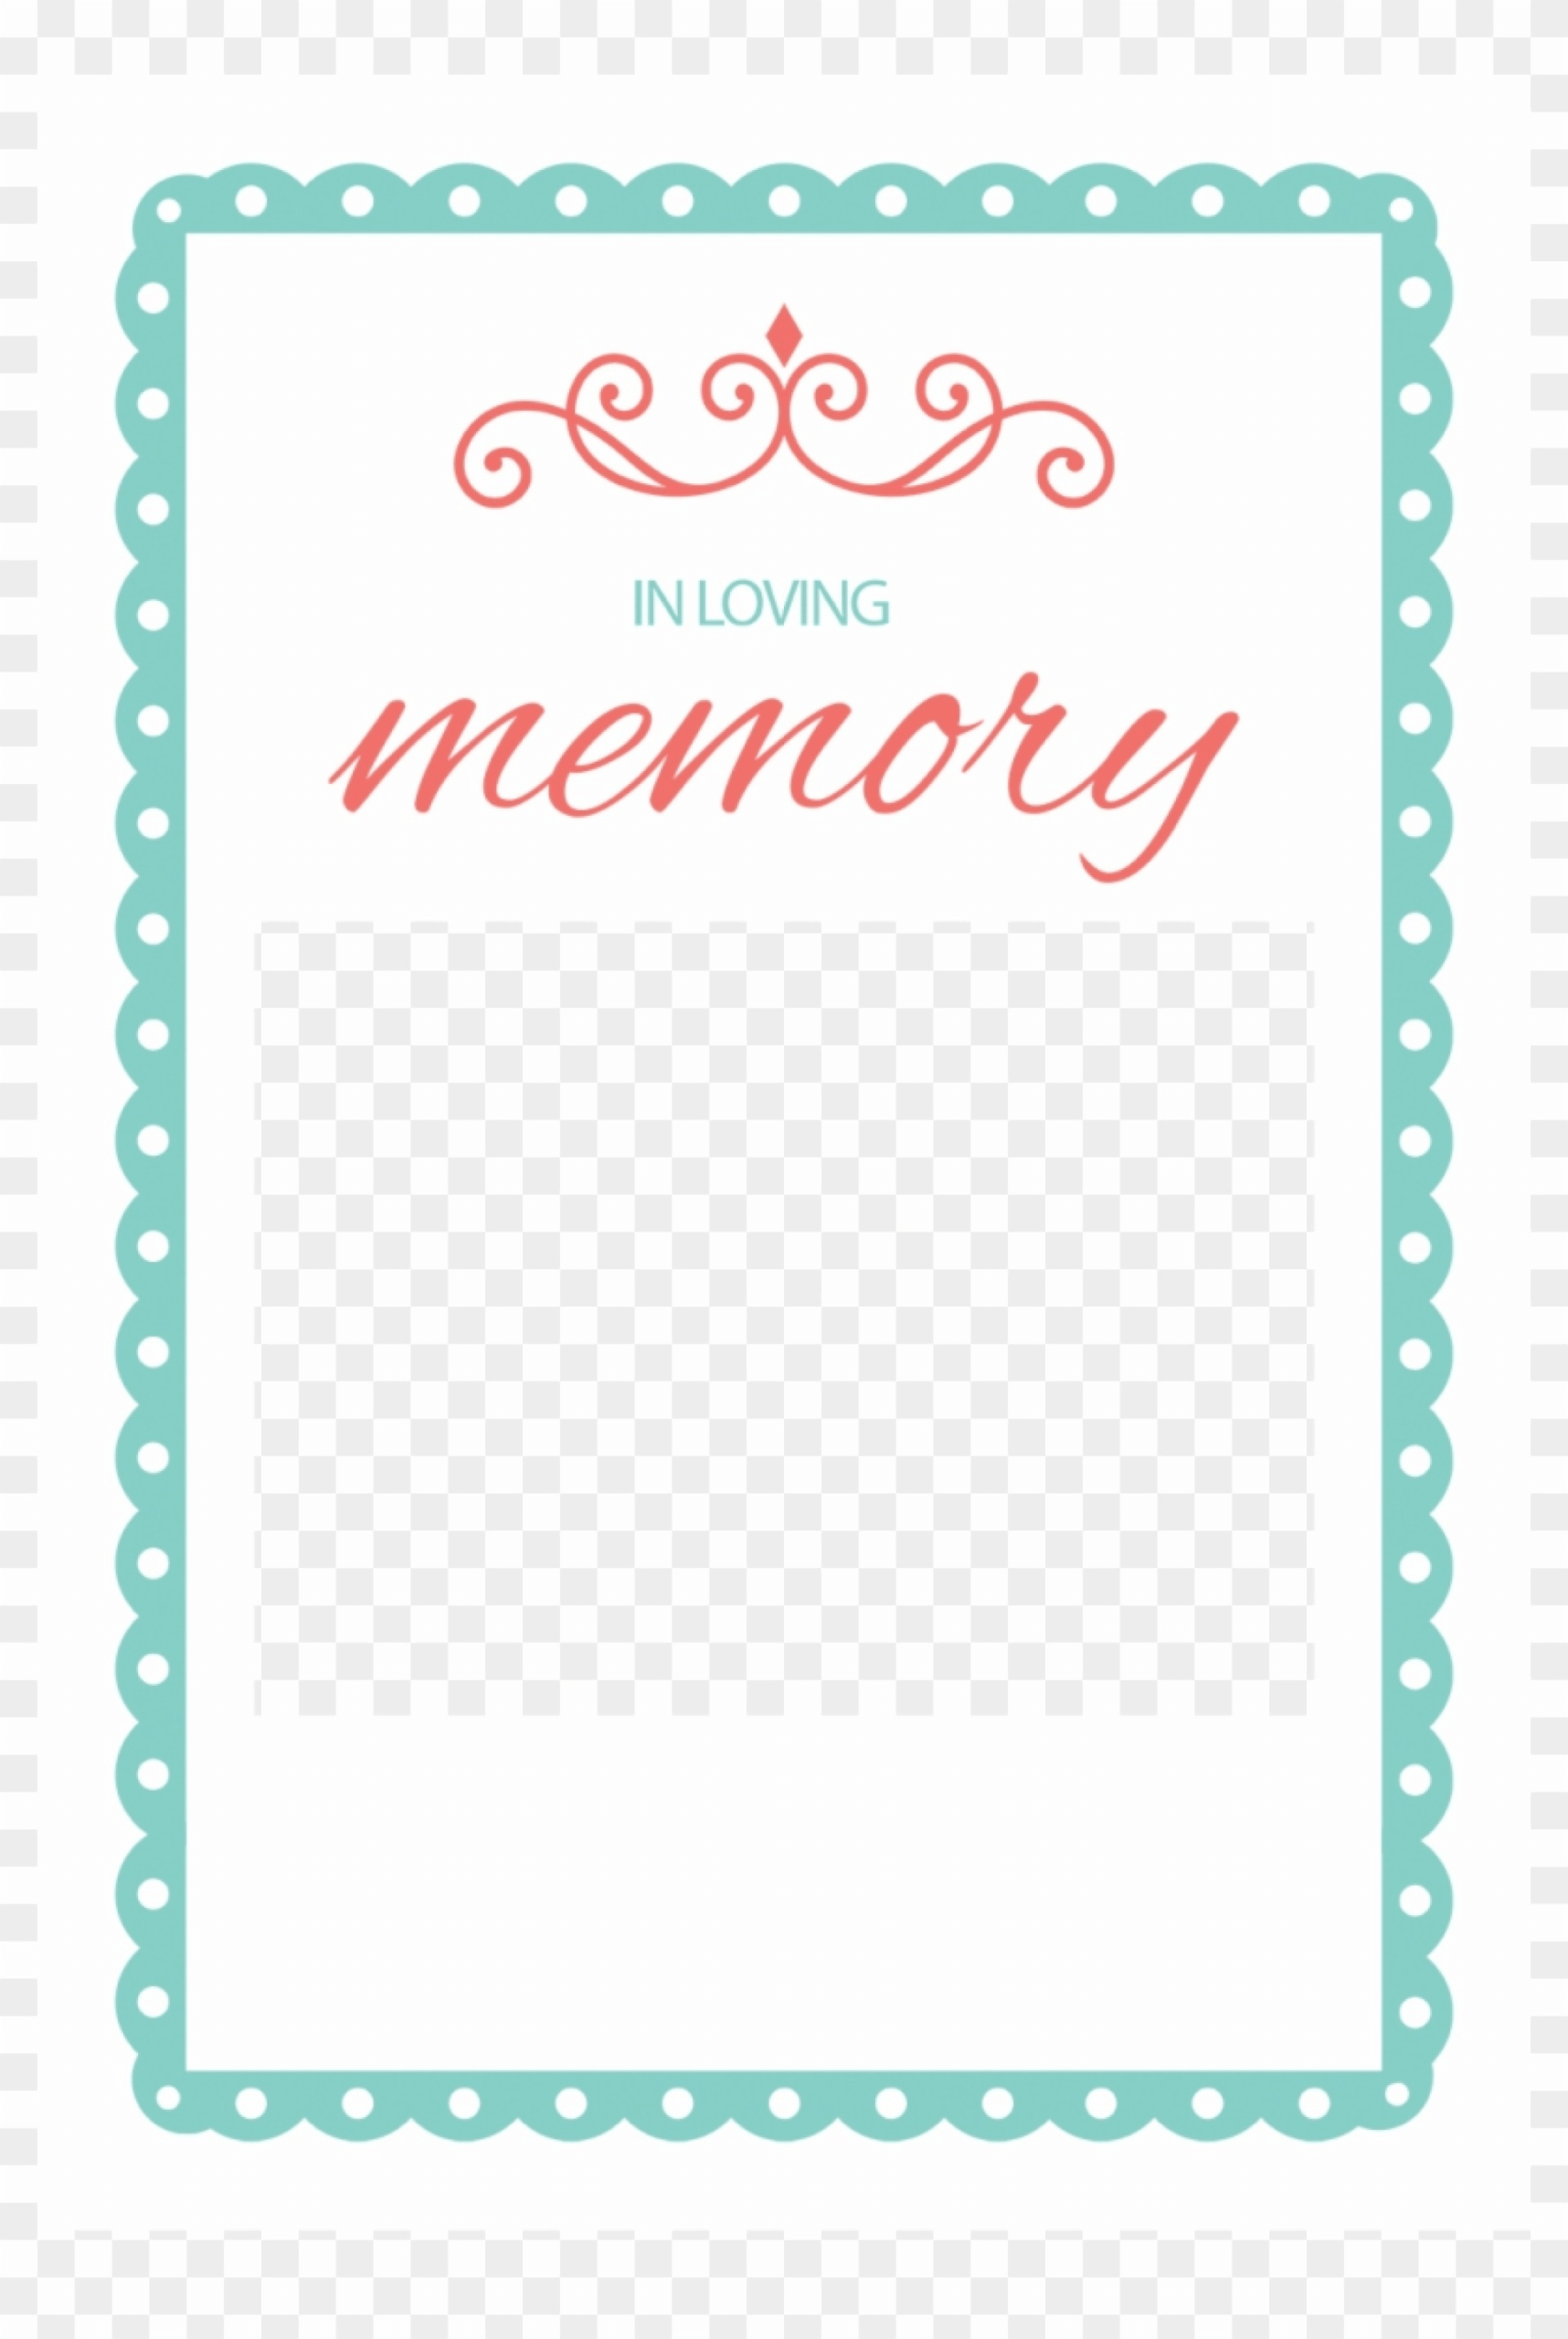 034 Il Fullxfull 1844118323 4Nro In Loving Memory Templates With In Memory Cards Templates